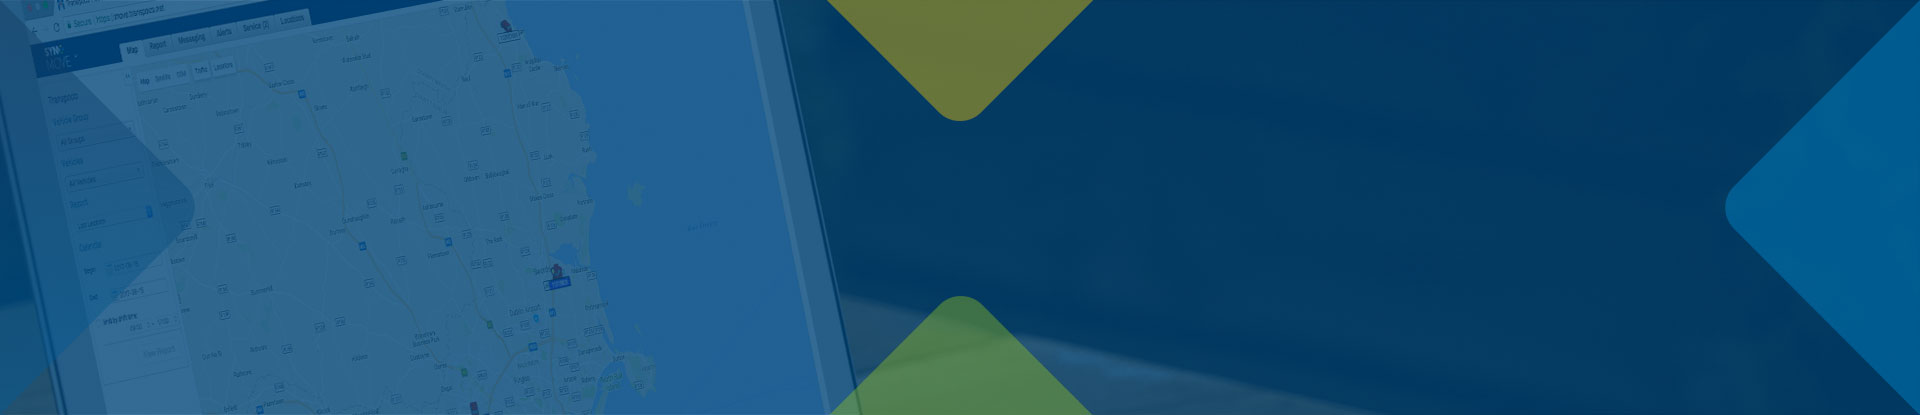 synx-banner-for-move-page.jpg